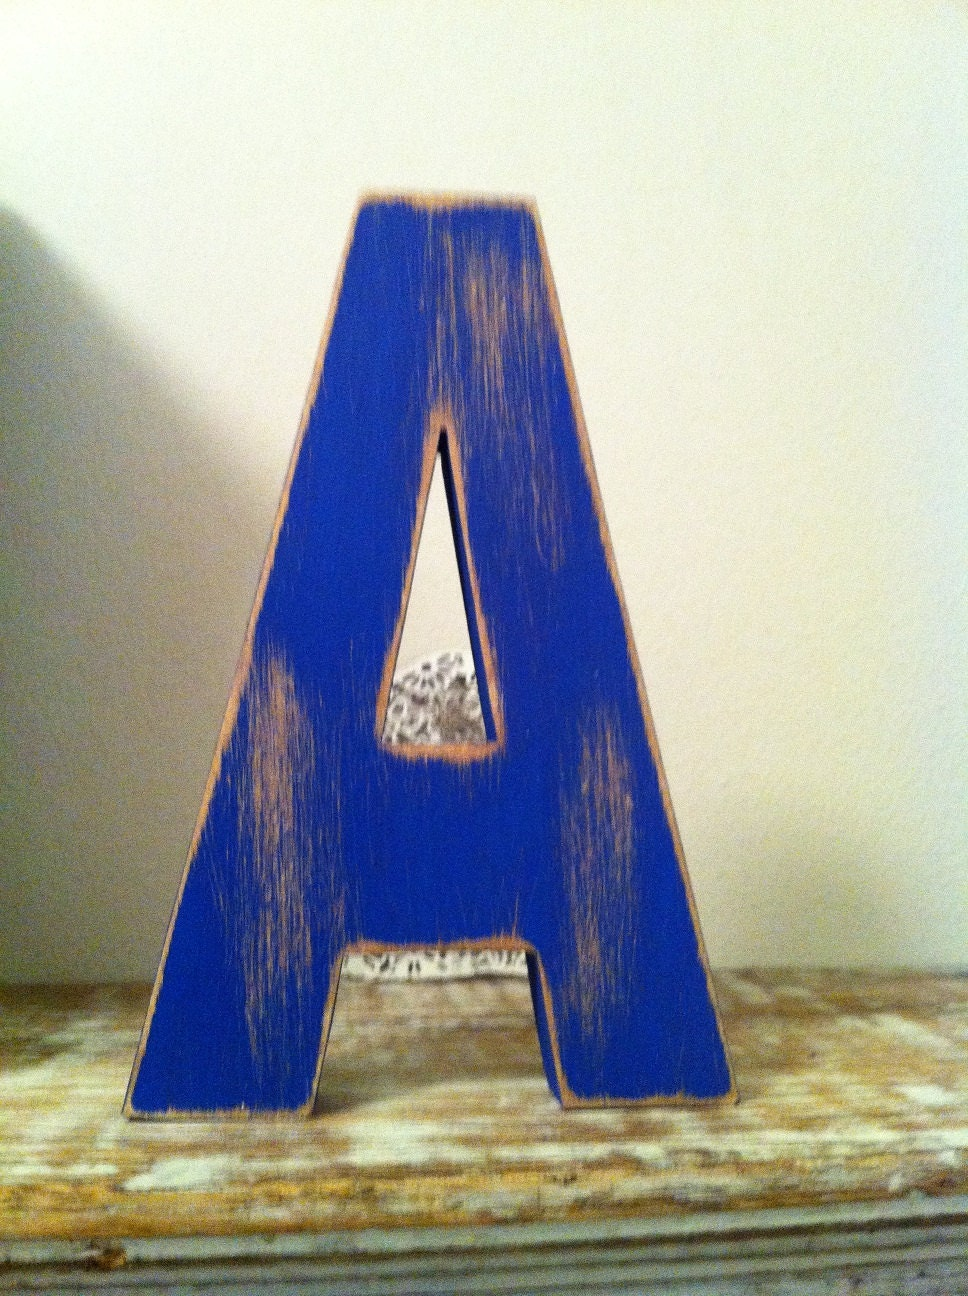 Letter A in Ariel font, painted in Union Jack blue, with heavy distressing